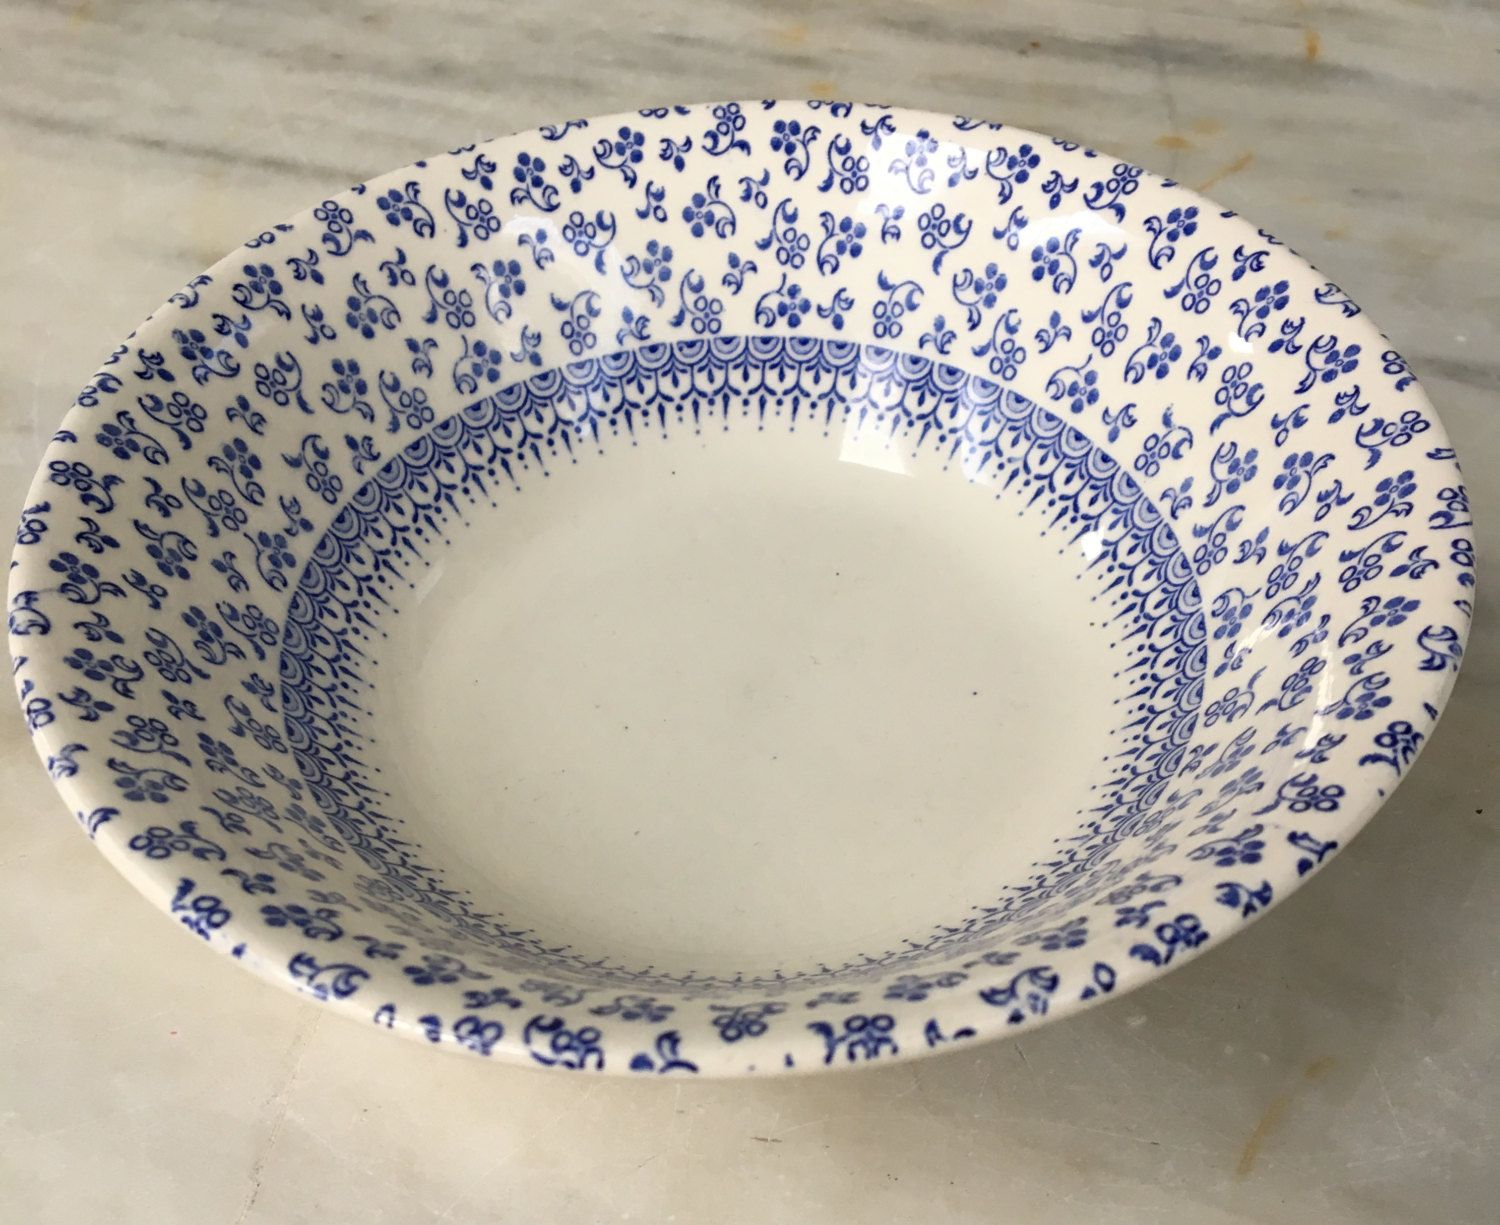 Vintage English Ironstone Tableware (EIT) Coupe Bowls - \ Provence Blue\  pattern | & Vintage English Ironstone Tableware (EIT) Coupe Bowls - "|1500|1225|?|3d4c73440a42fbe066ff7bff6e4853a2|False|UNLIKELY|0.33212706446647644